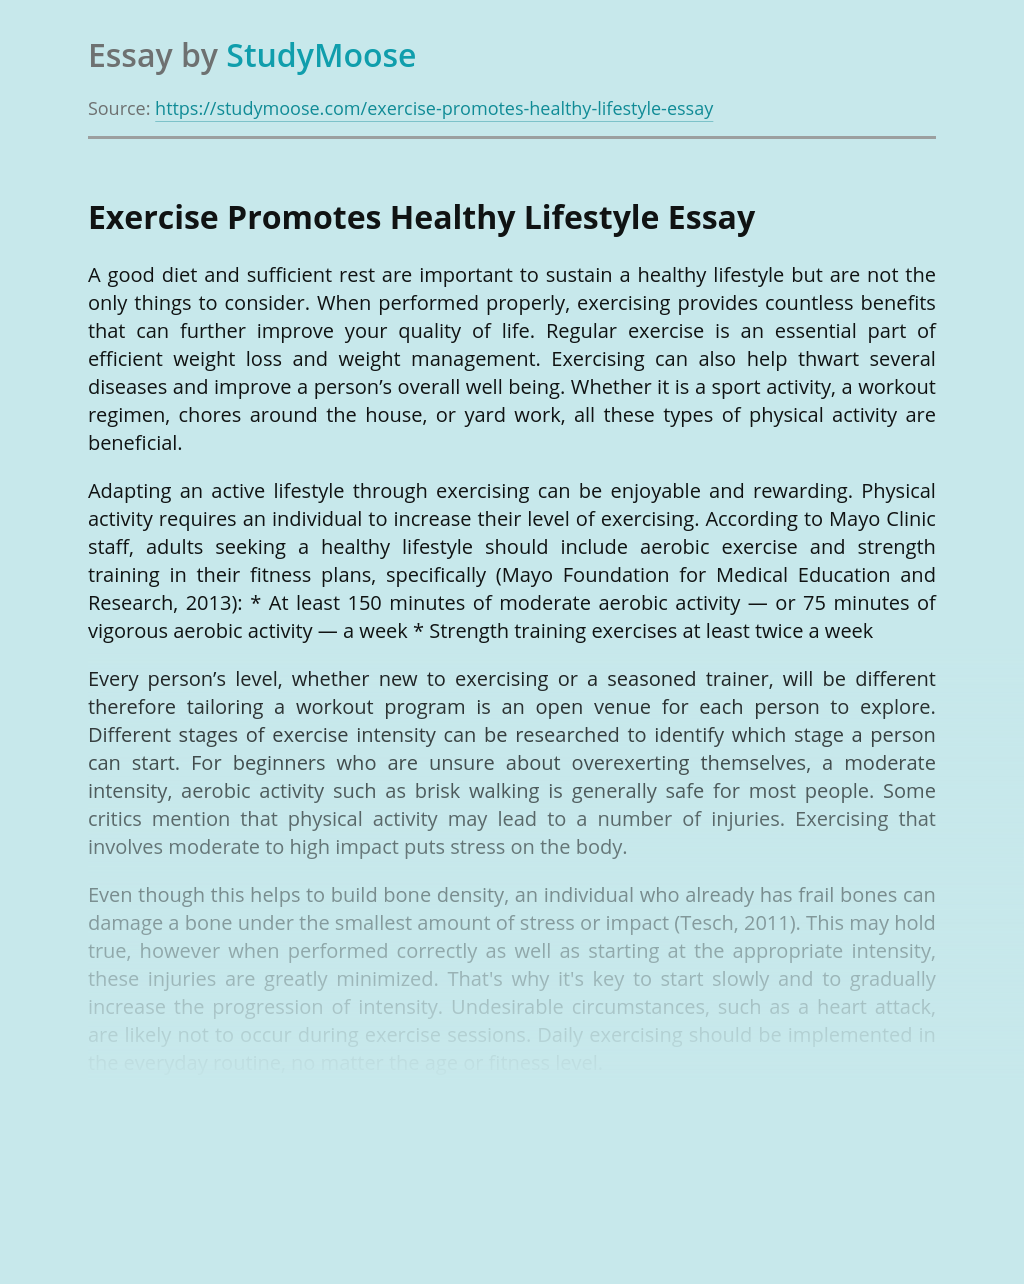 Exercise Promotes Healthy Lifestyle